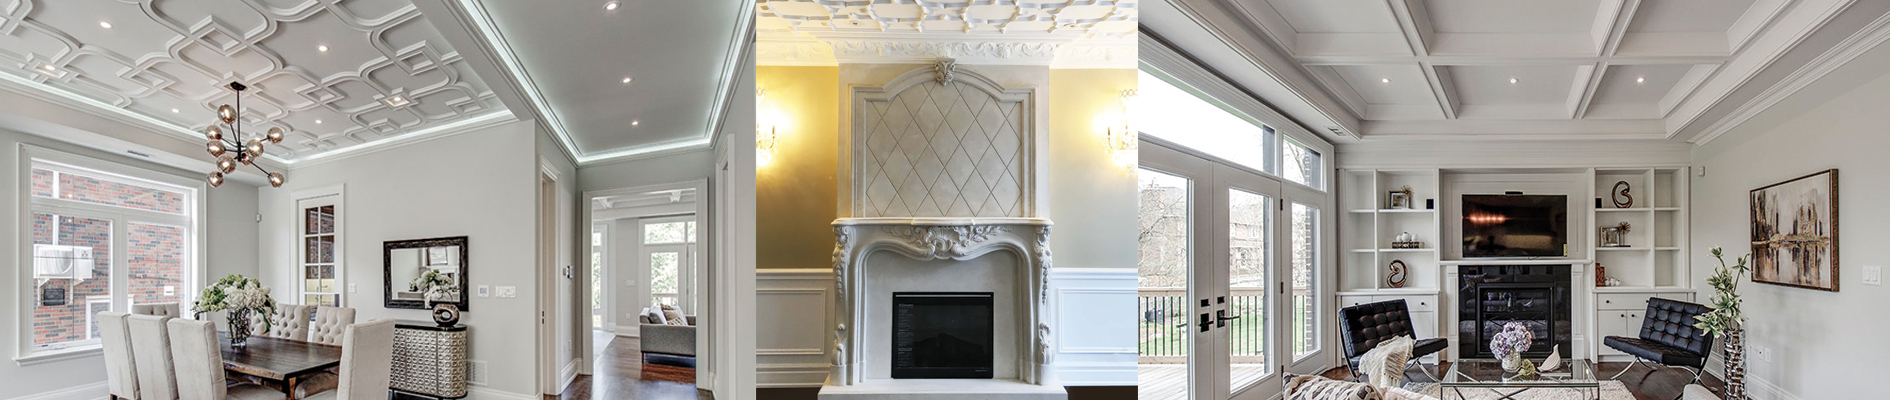 Architectural Moulding And Fireplace Mantels